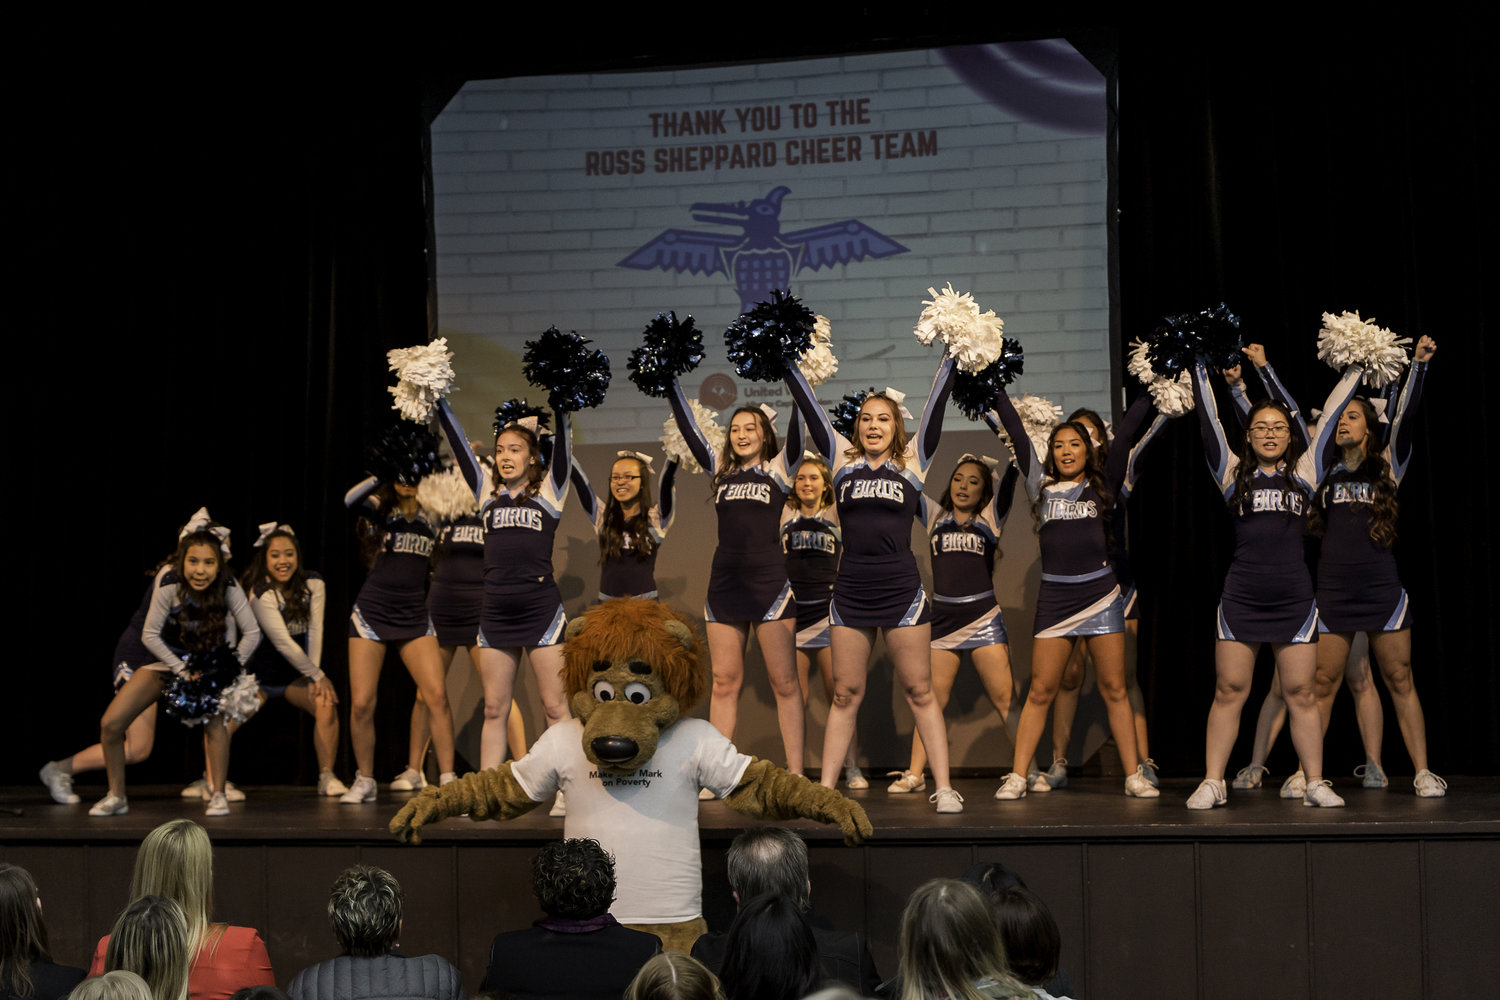 a cheer leading team on a stage with Roary performing a routine